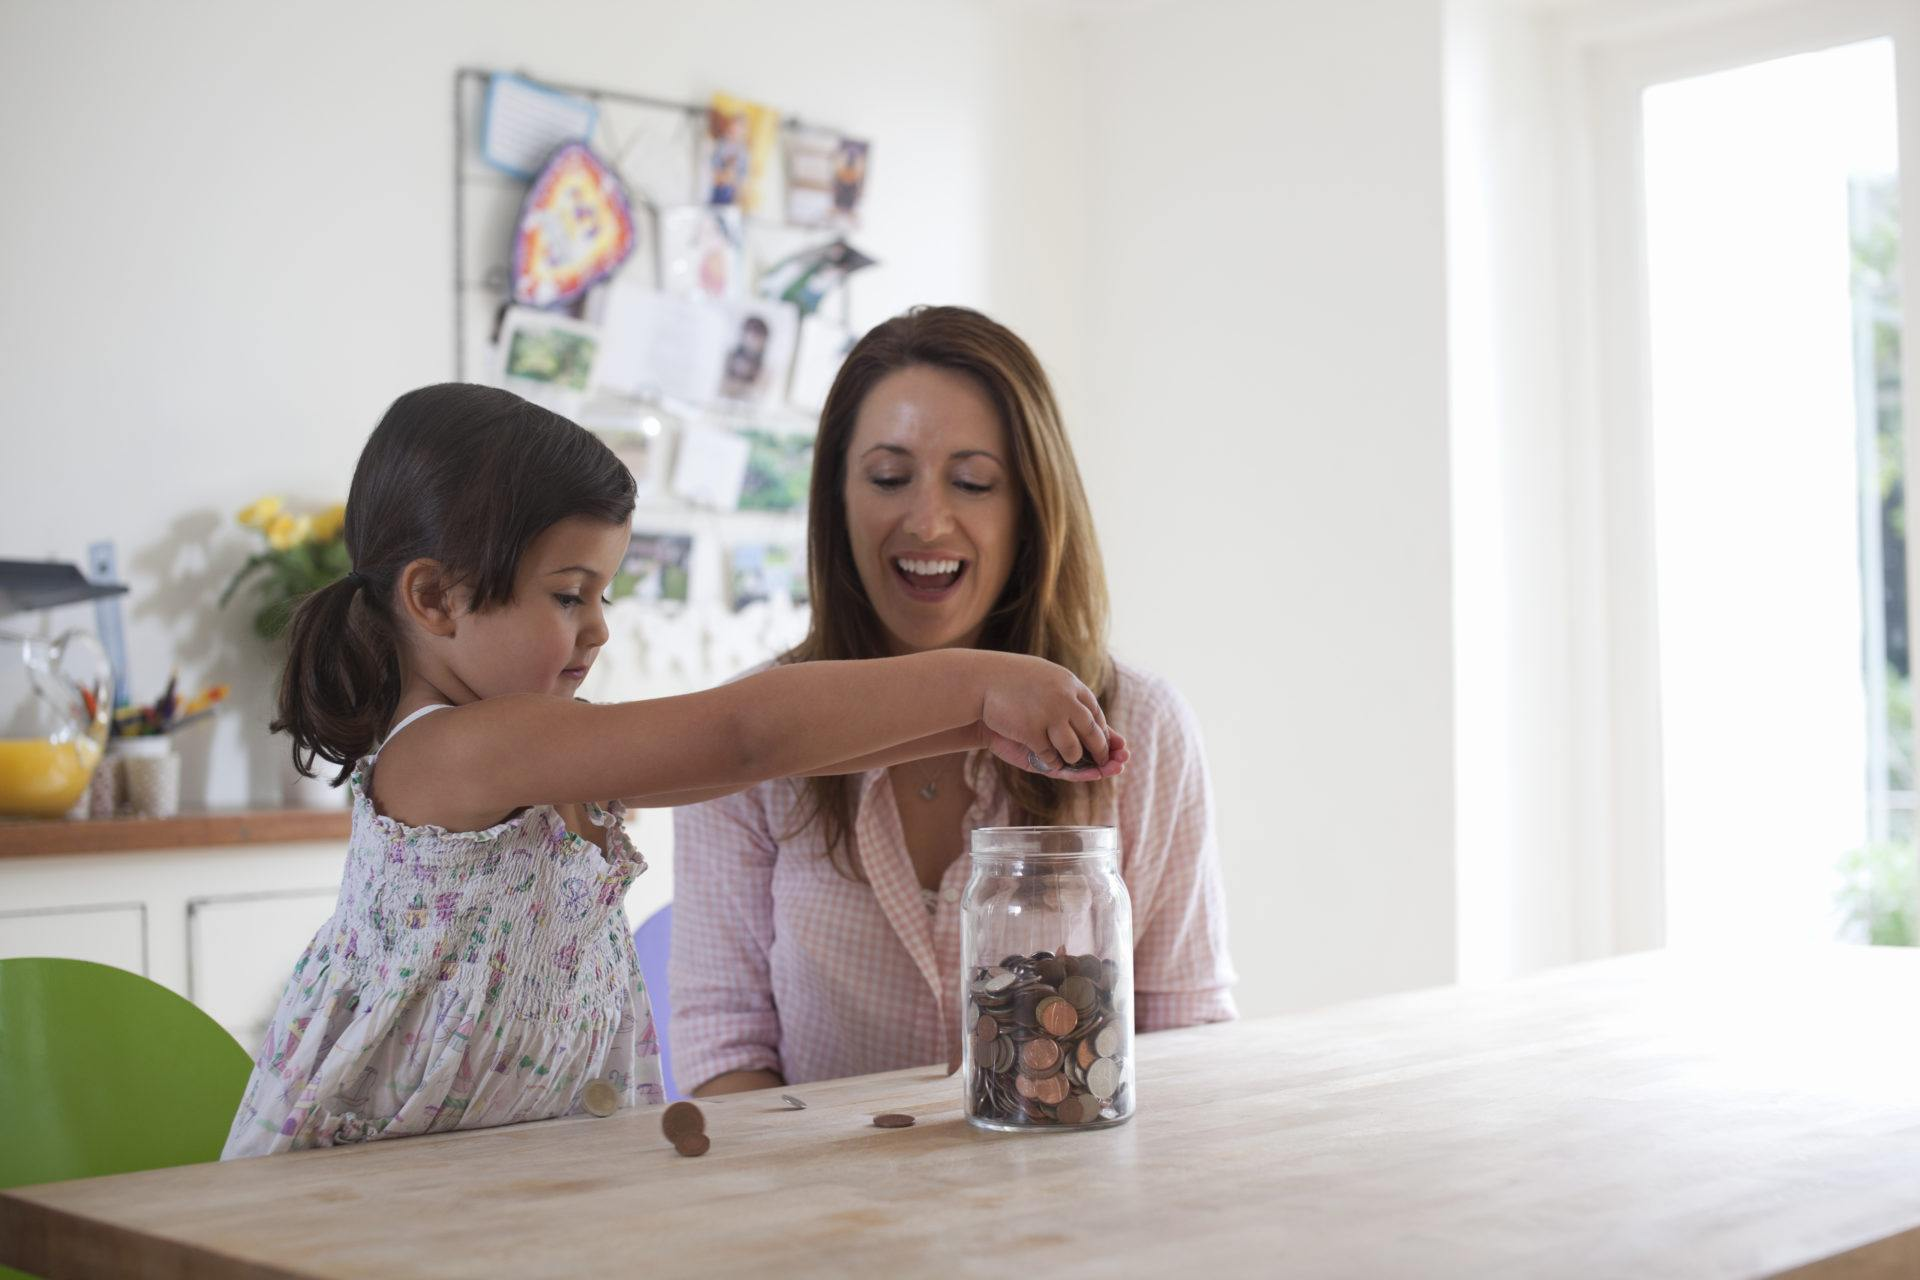 Mother and daughter putting pennies in a jar